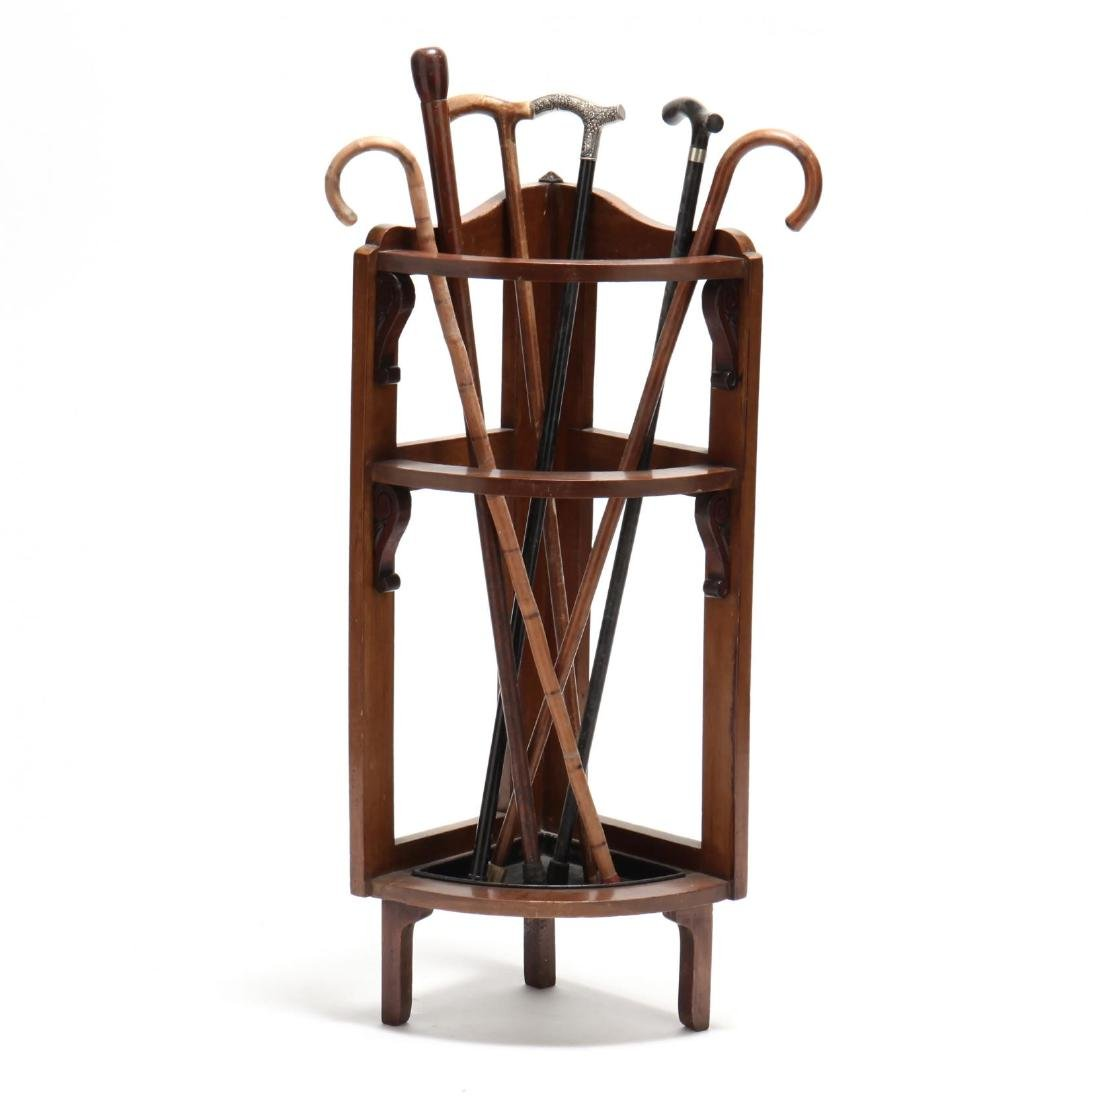 Edwardian Cane Stand With Canes